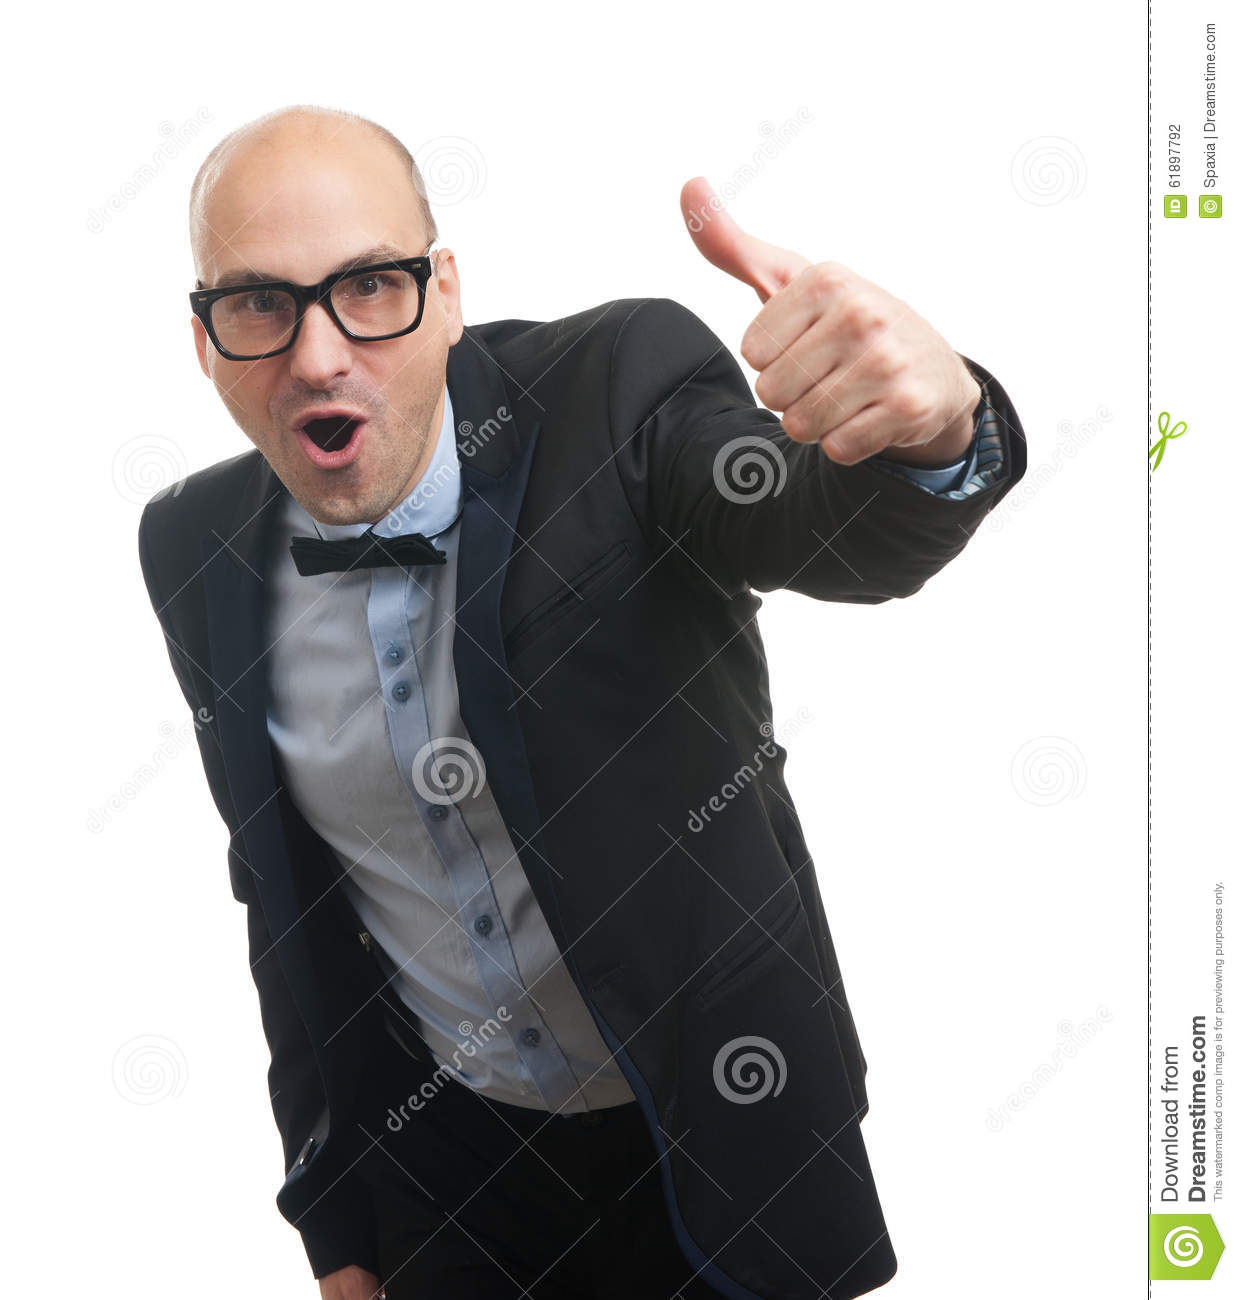 Funny Bald Man Showing His Thumb Up Stock Photo